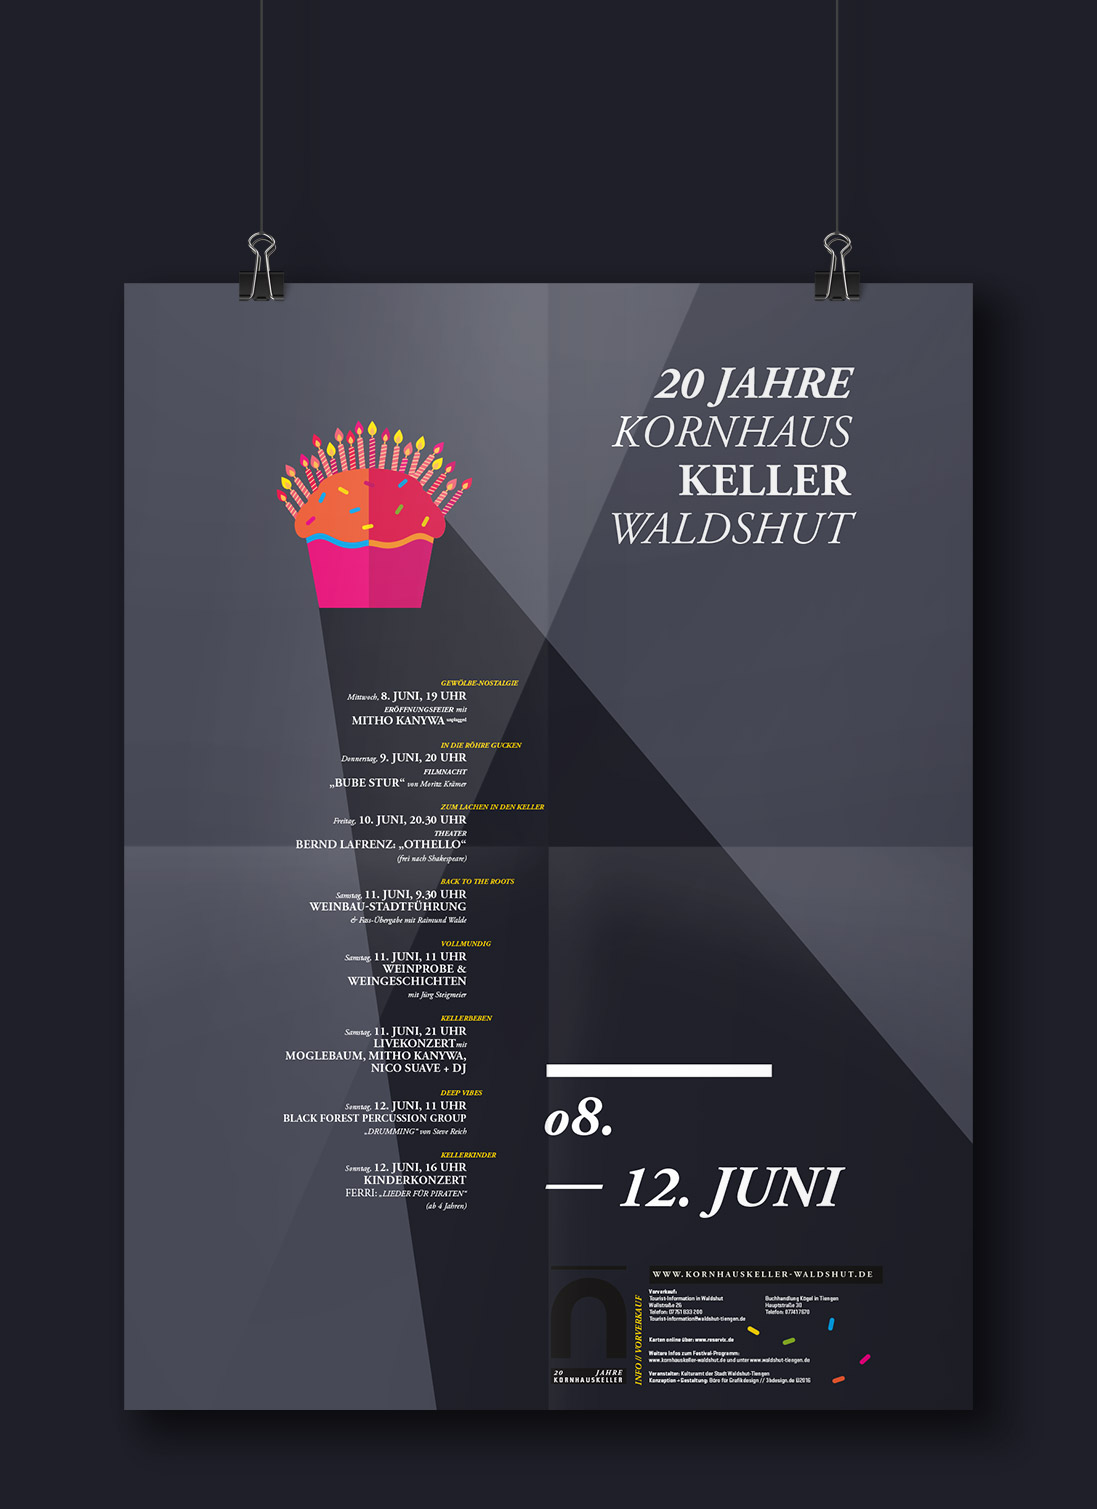 kornhauskeller waldshut 20 jahre b ro f r grafik design b konzeption gestaltung. Black Bedroom Furniture Sets. Home Design Ideas